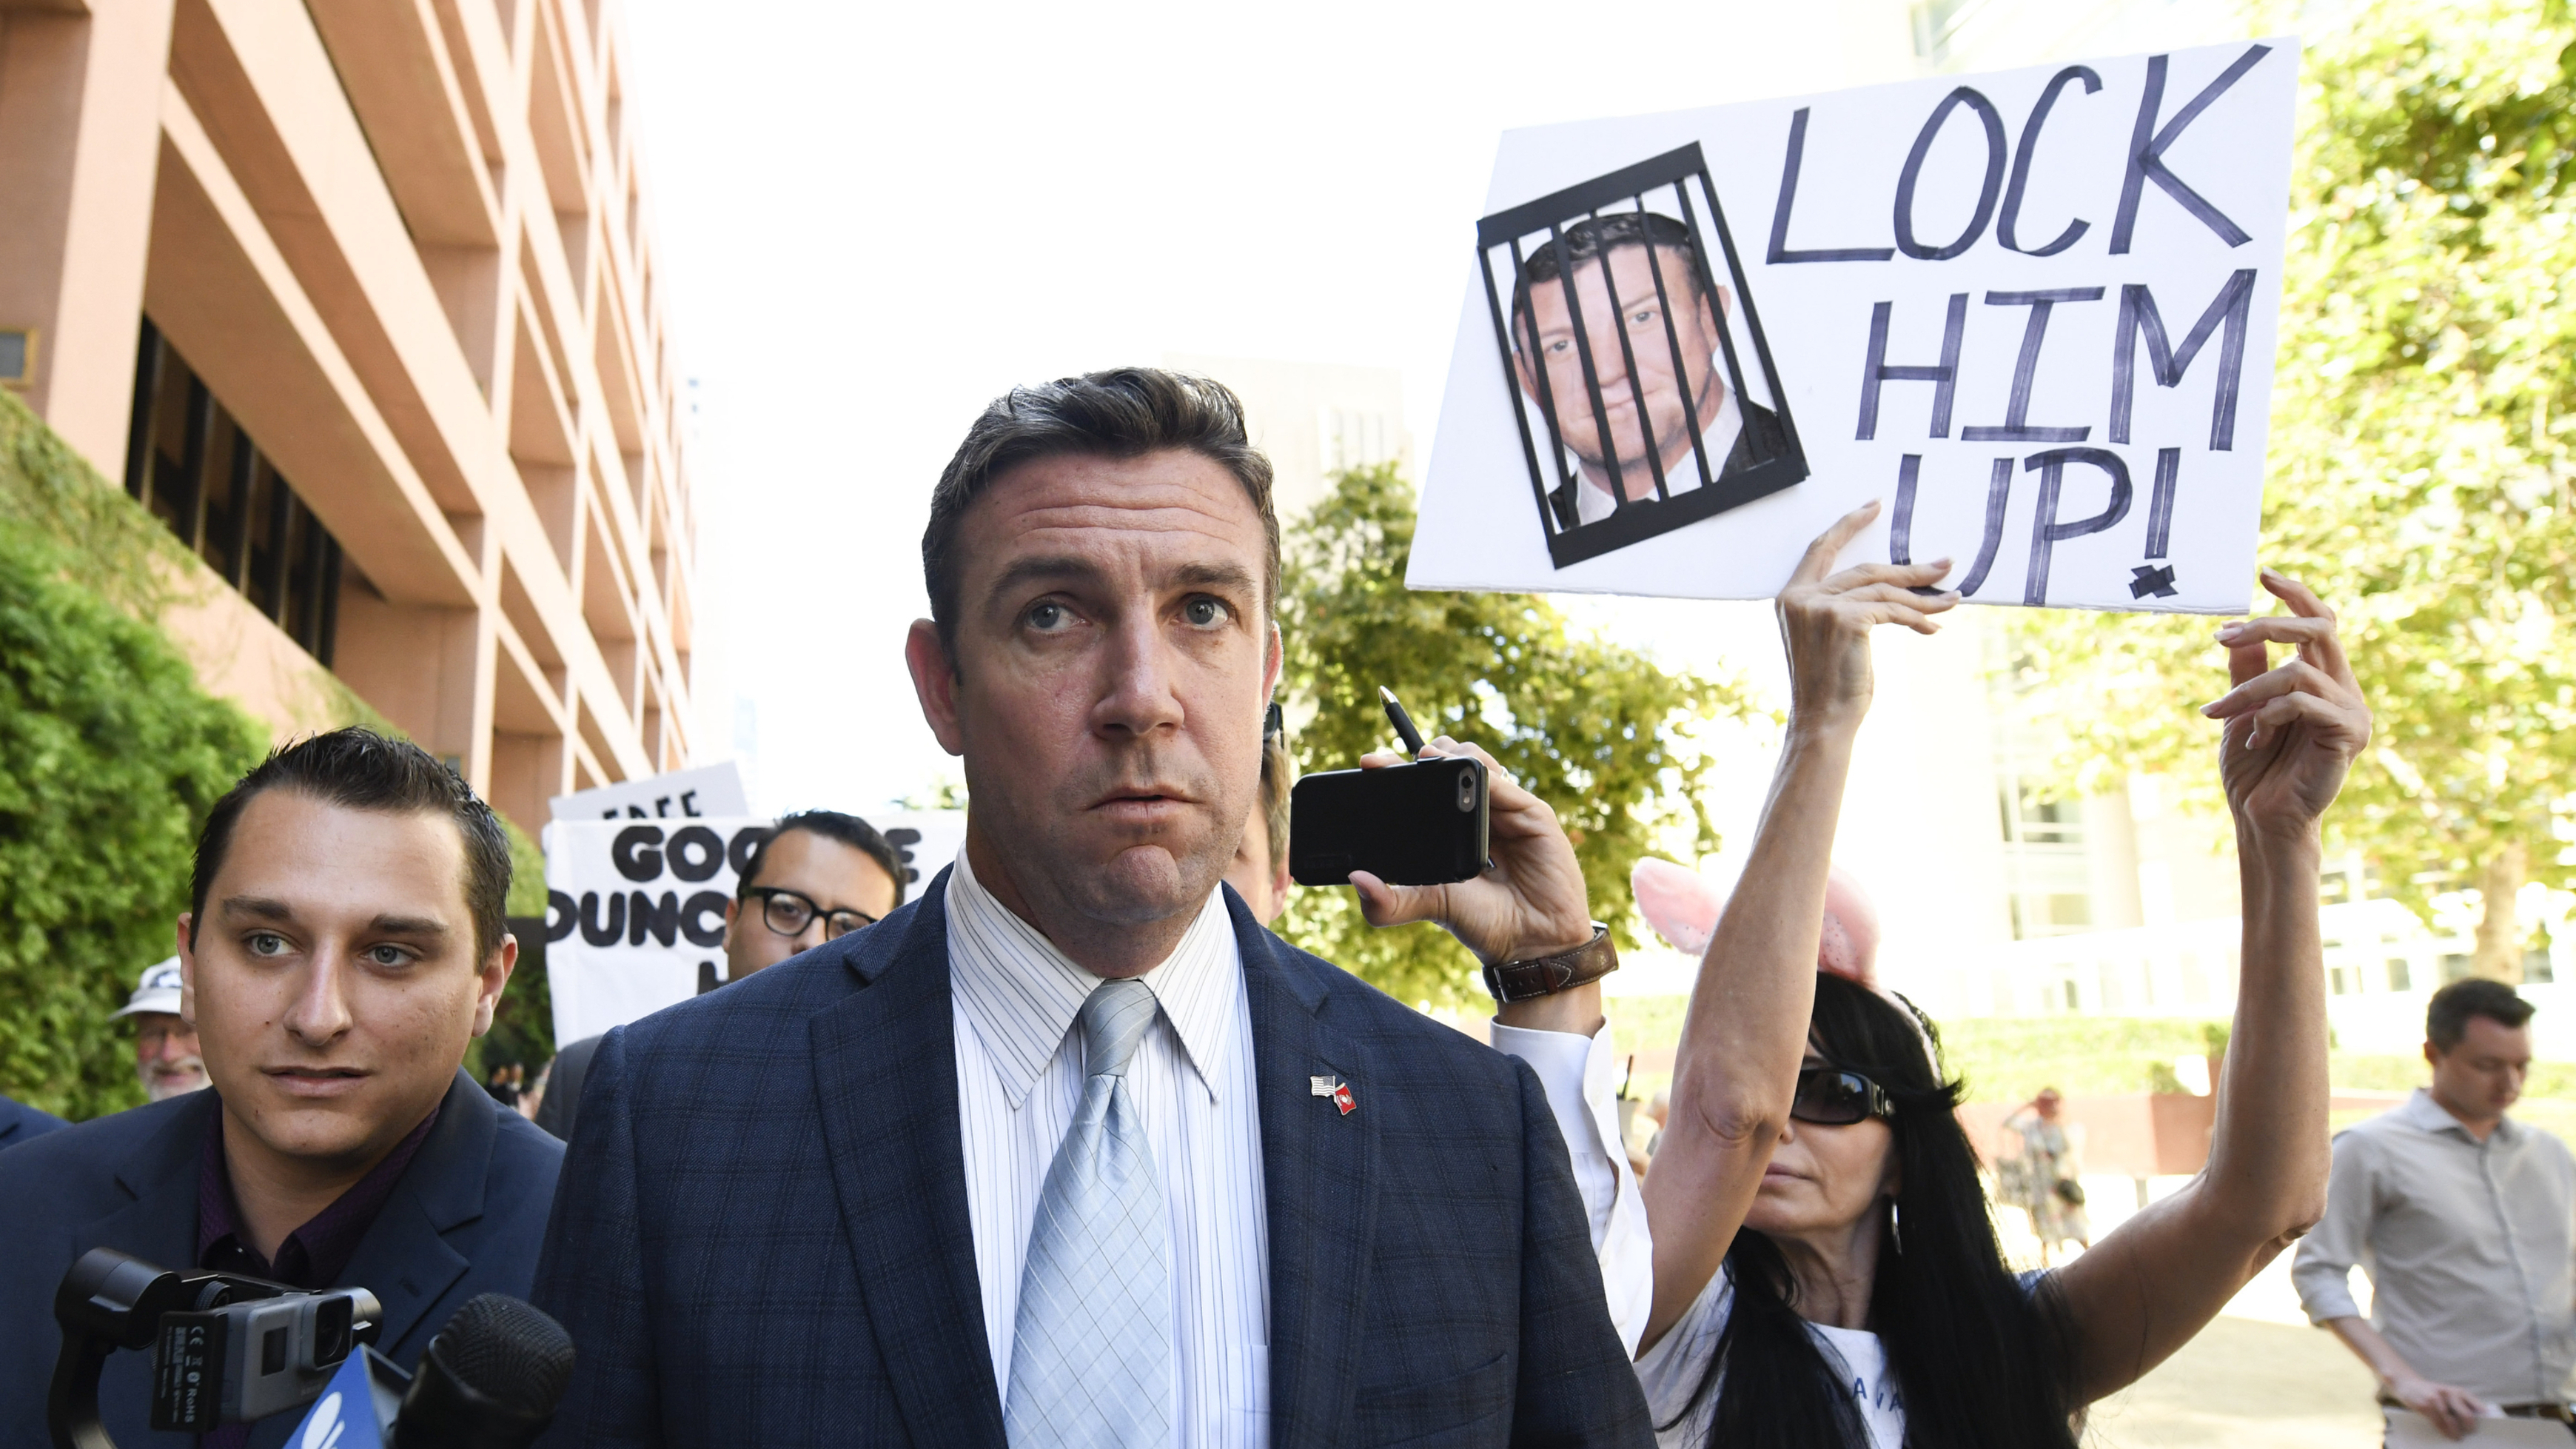 GOP Rep. Duncan Hunter To Plead Guilty To Campaign Finance Charge, May Resign